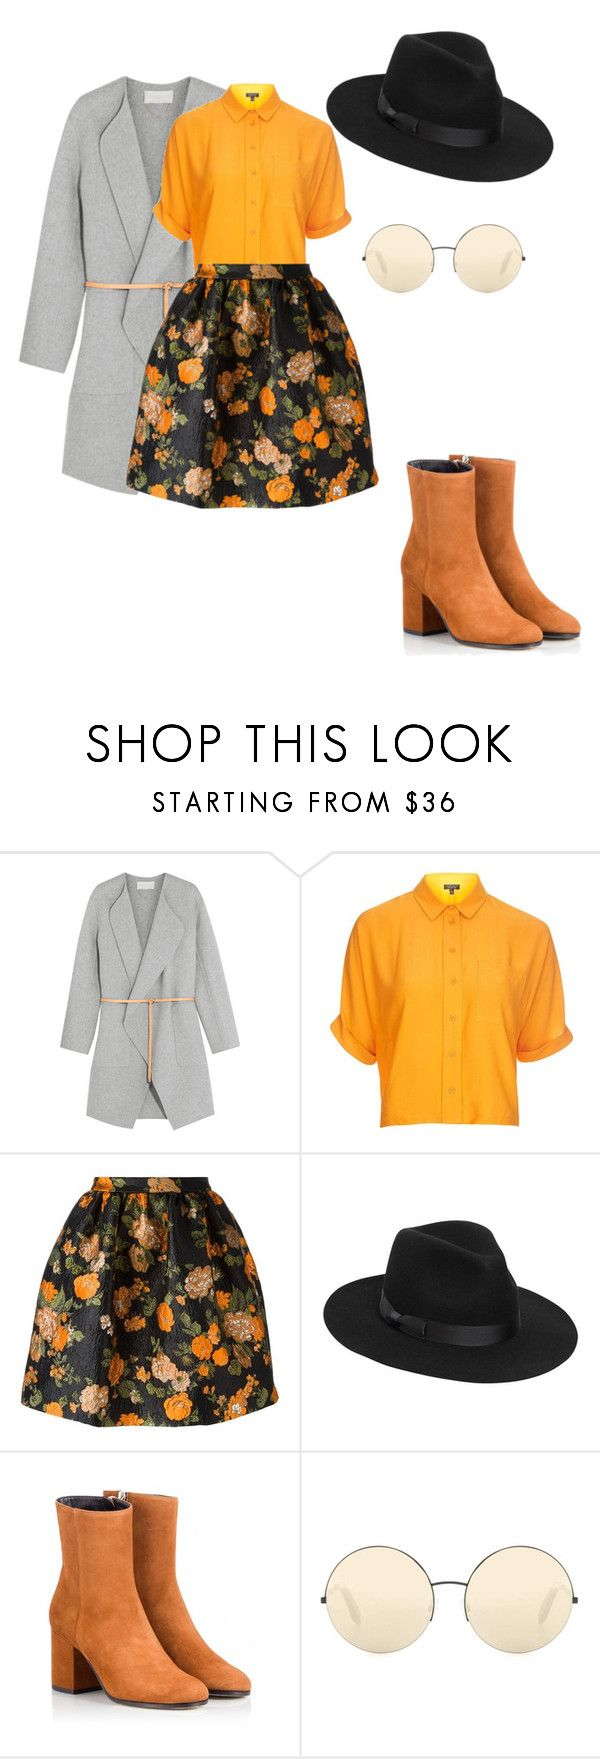 """""""50s queen"""" by daddy-allahu-akbar ❤ liked on Polyvore featuring Vanessa Bruno, Topshop, MSGM, Lack of Color, Fratelli Karida and Victoria Beckham"""